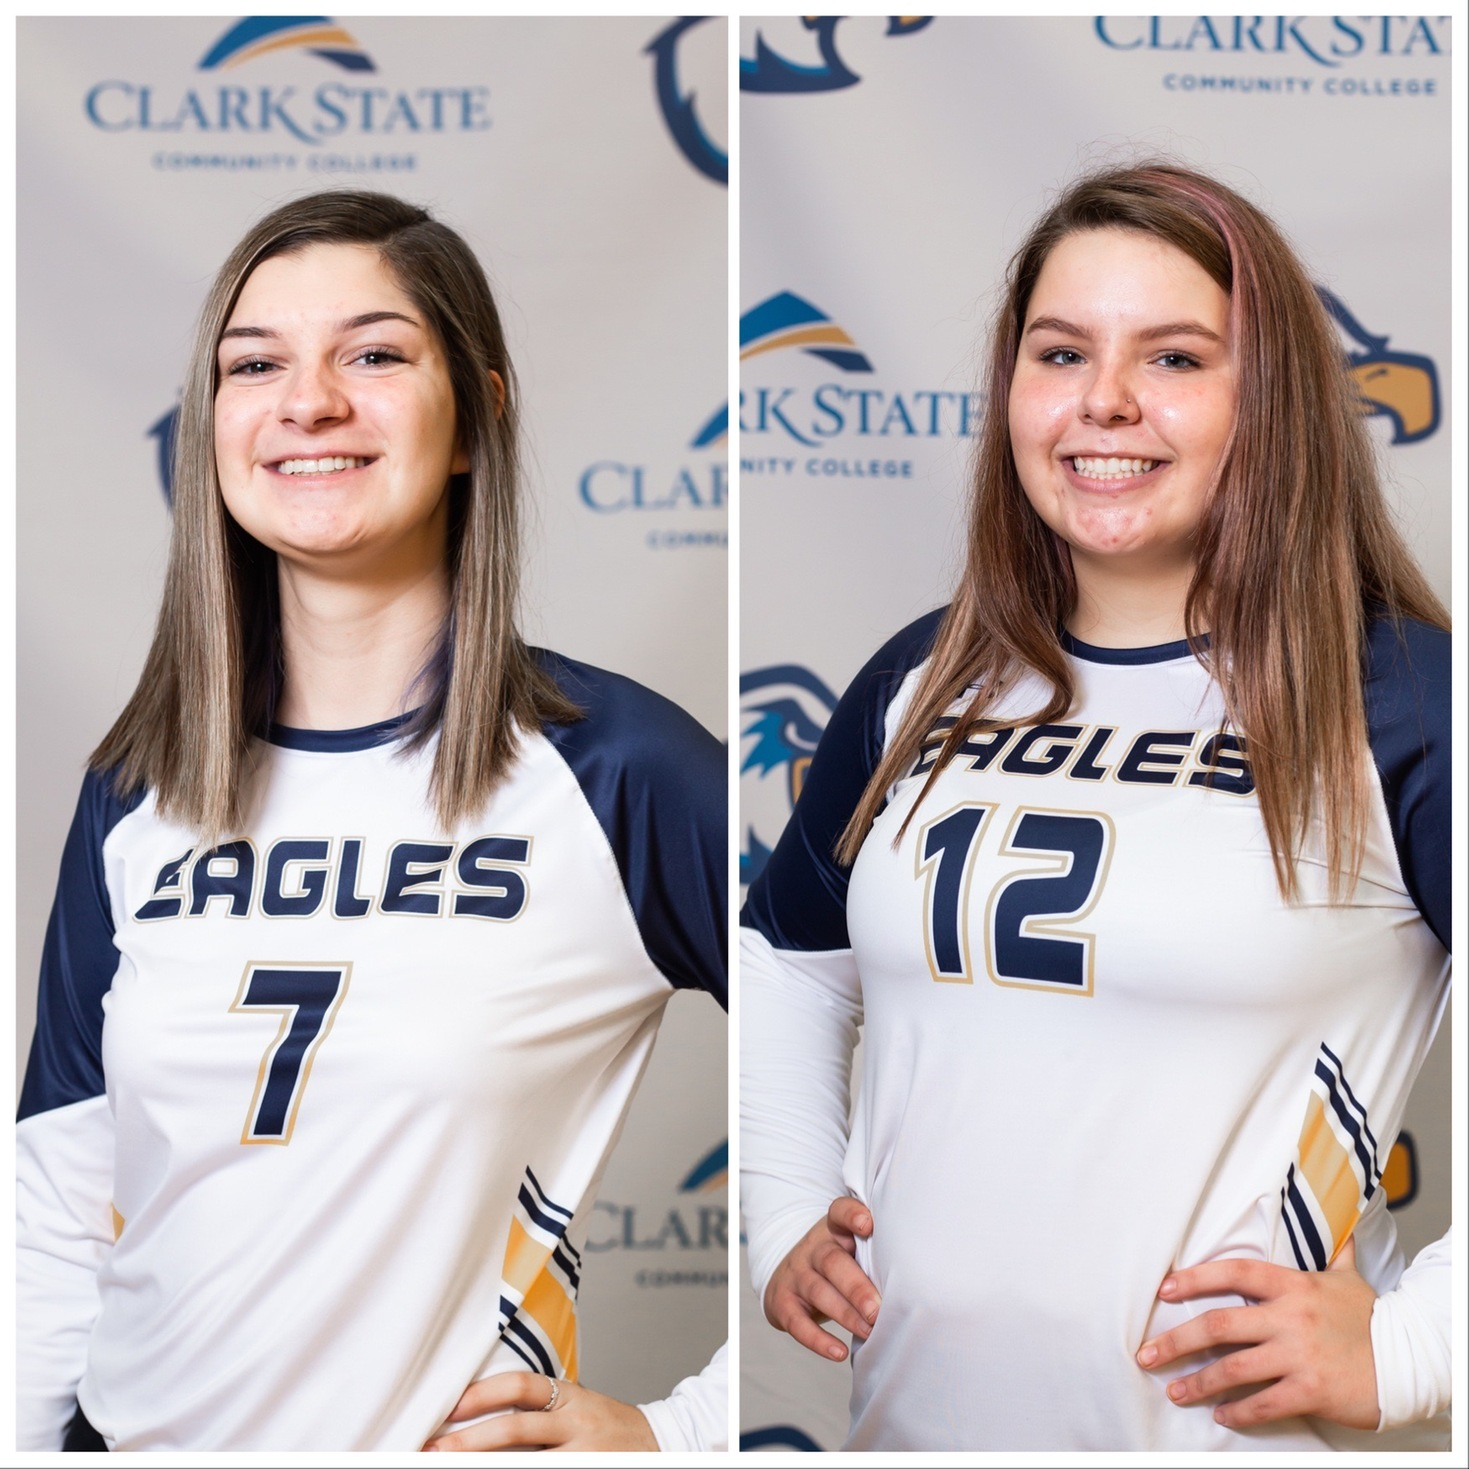 Hannah Walls (7) was selected to both the All-OCCAC First Team and the All-OCCAC Freshman Team. Taylea Achtermann (12) won a spot on the All-OCCAC Honorable Mention Team.